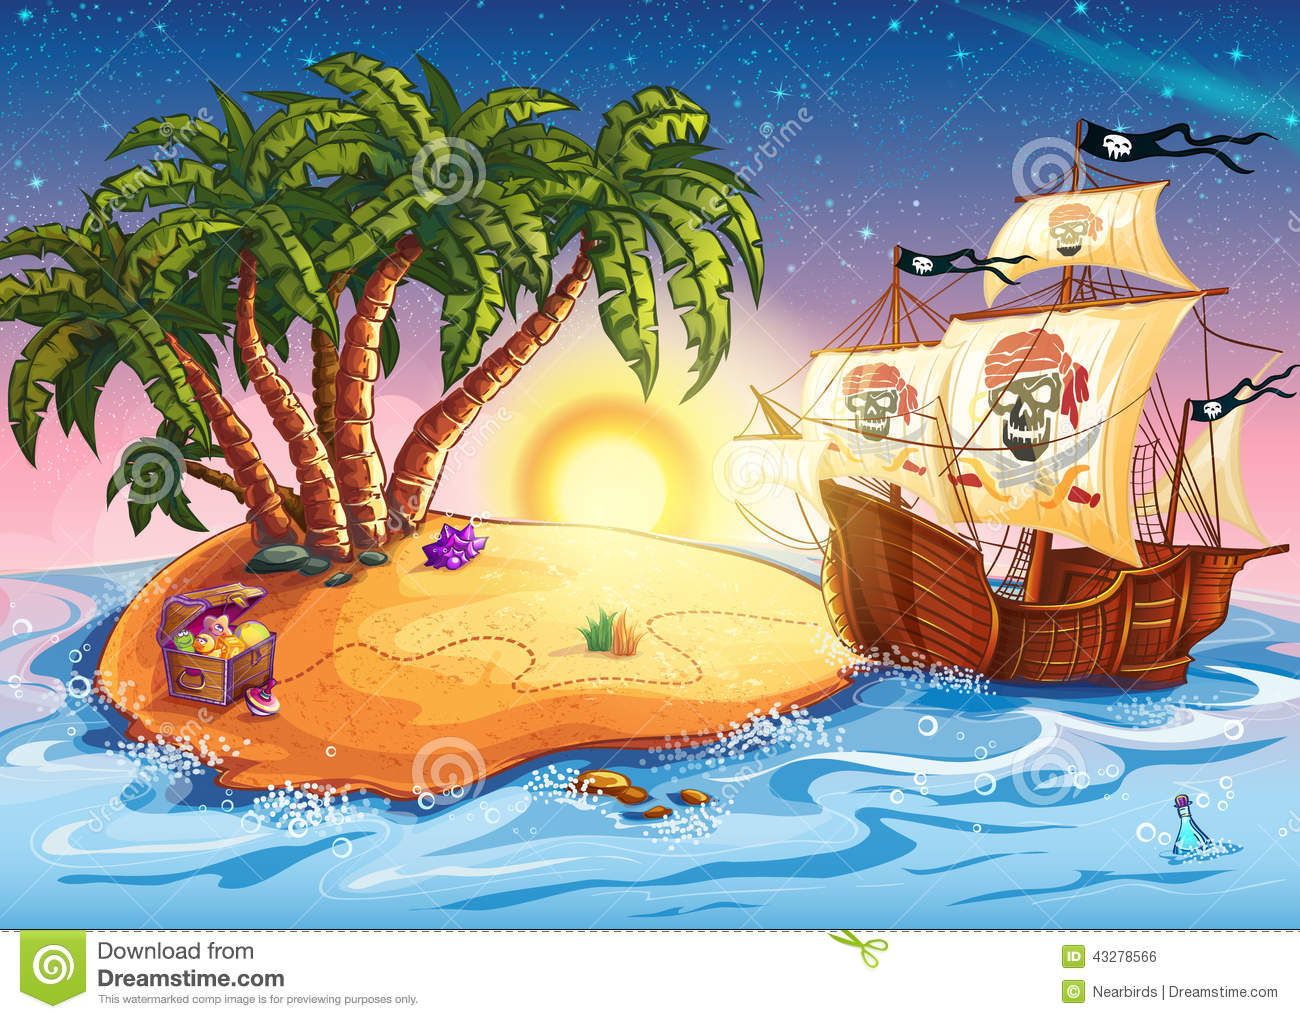 Pirate Ship Deck Images Stock Photos amp Vectors  Shutterstock